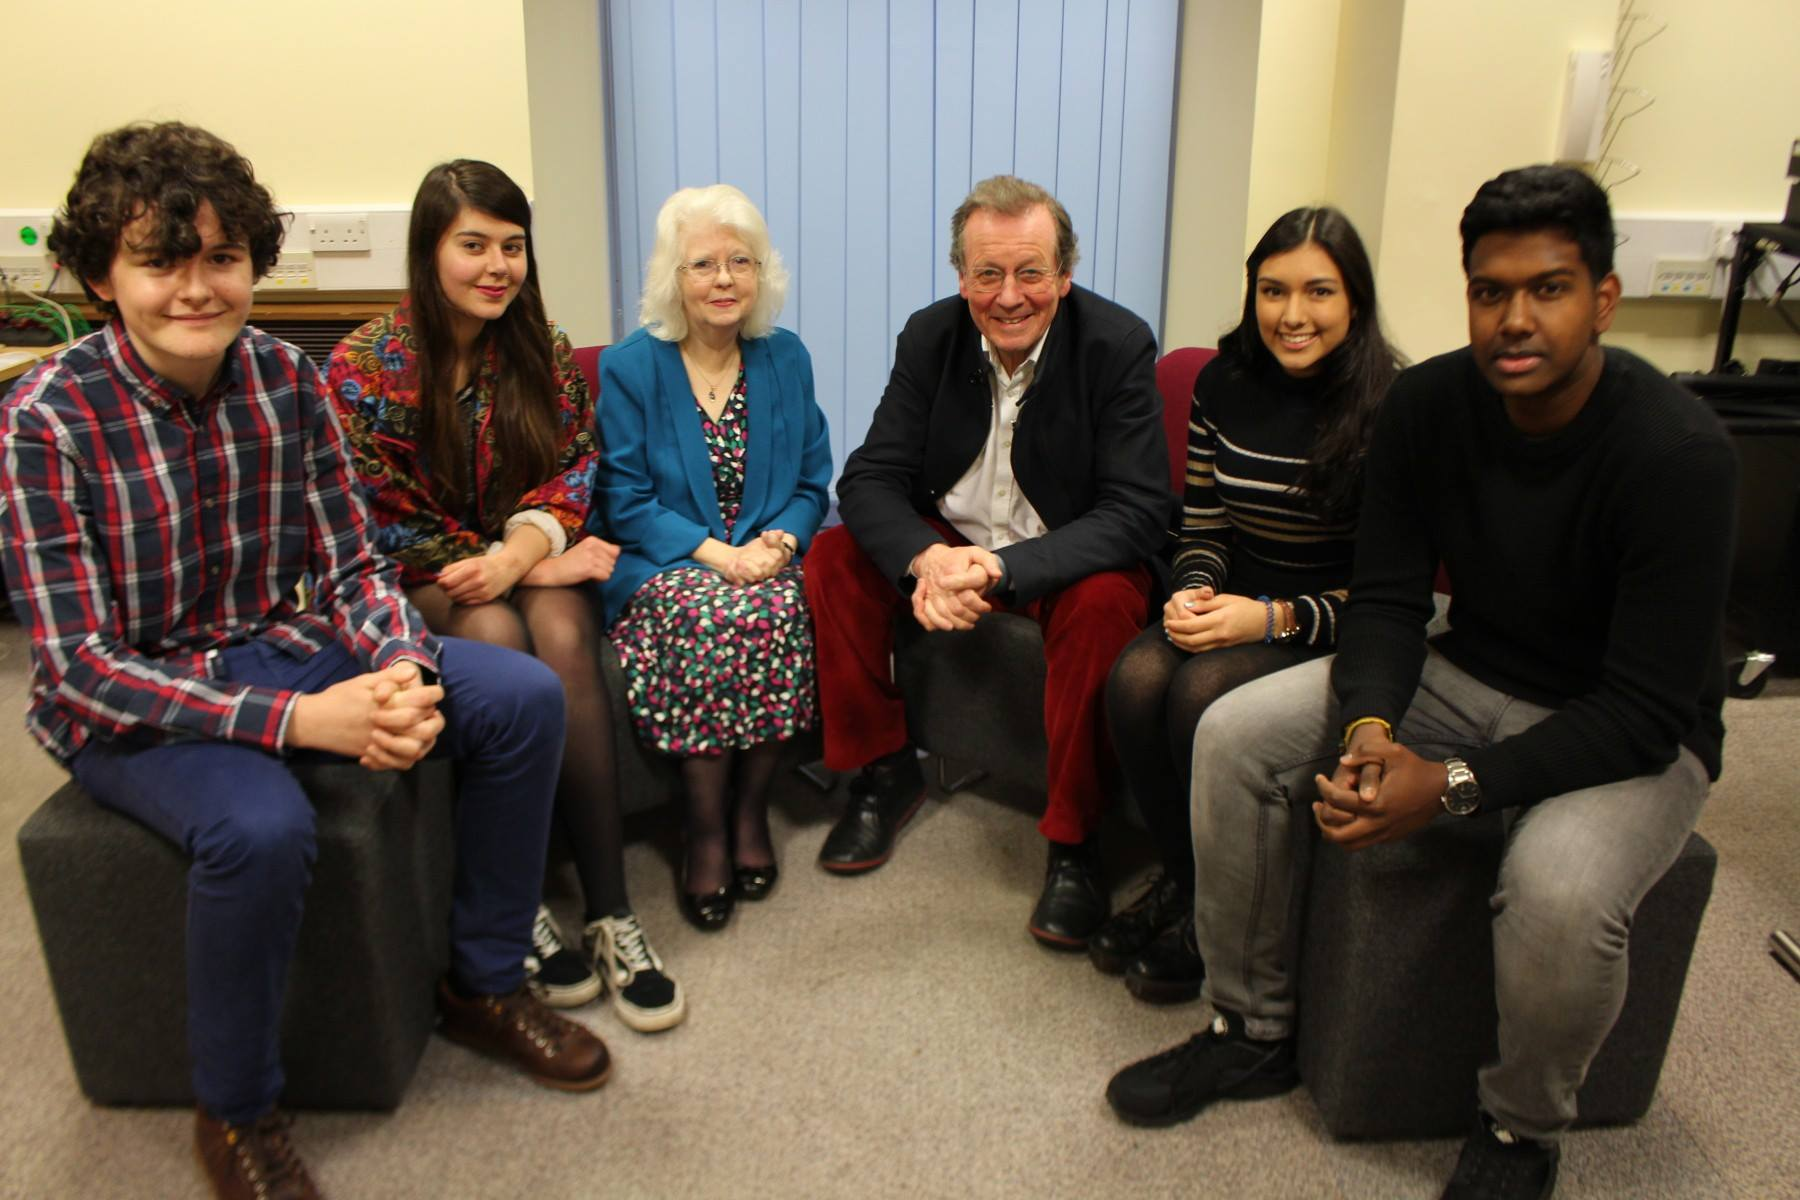 New youth mayors take the reins